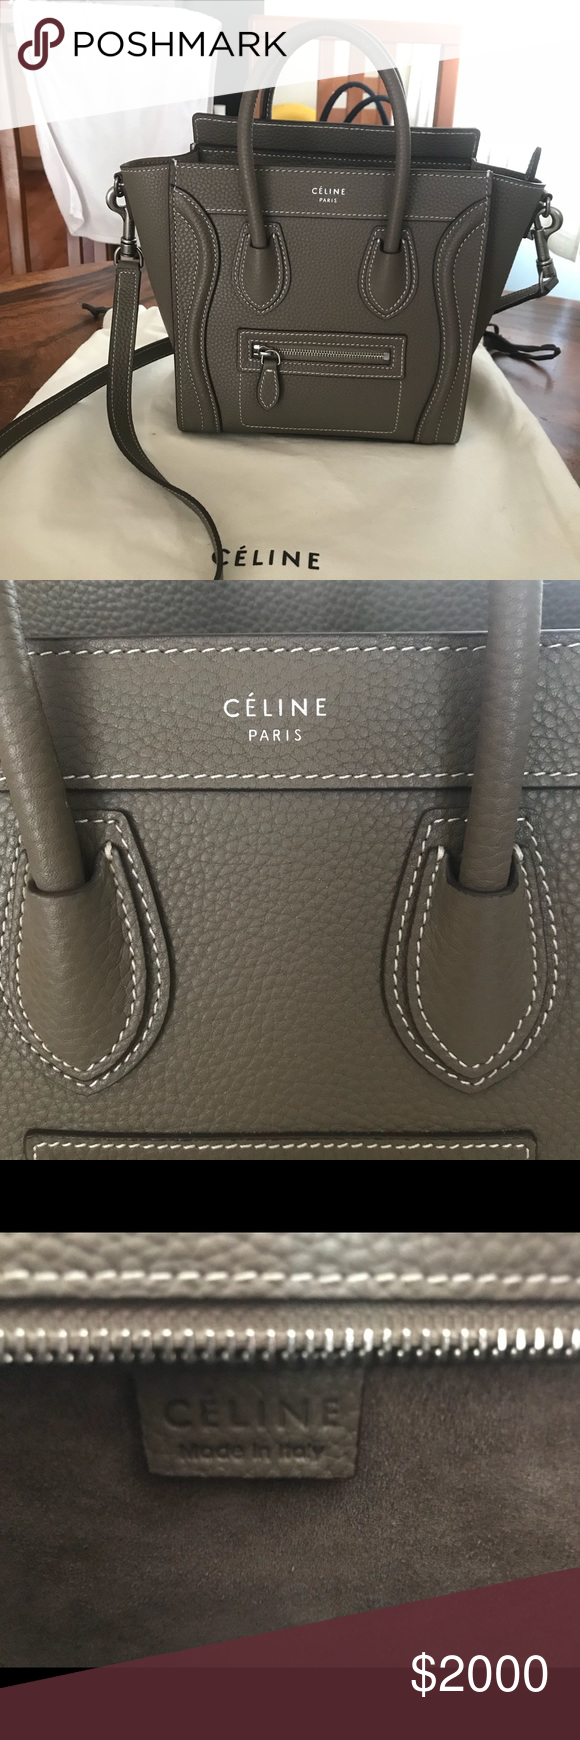 Authentic Céline Nano Luggage Authentic Drummed calfskin taupe color  removable straps comes with dust bag Excellent condition   More pics upon  request   ... f2605b1e76a0a